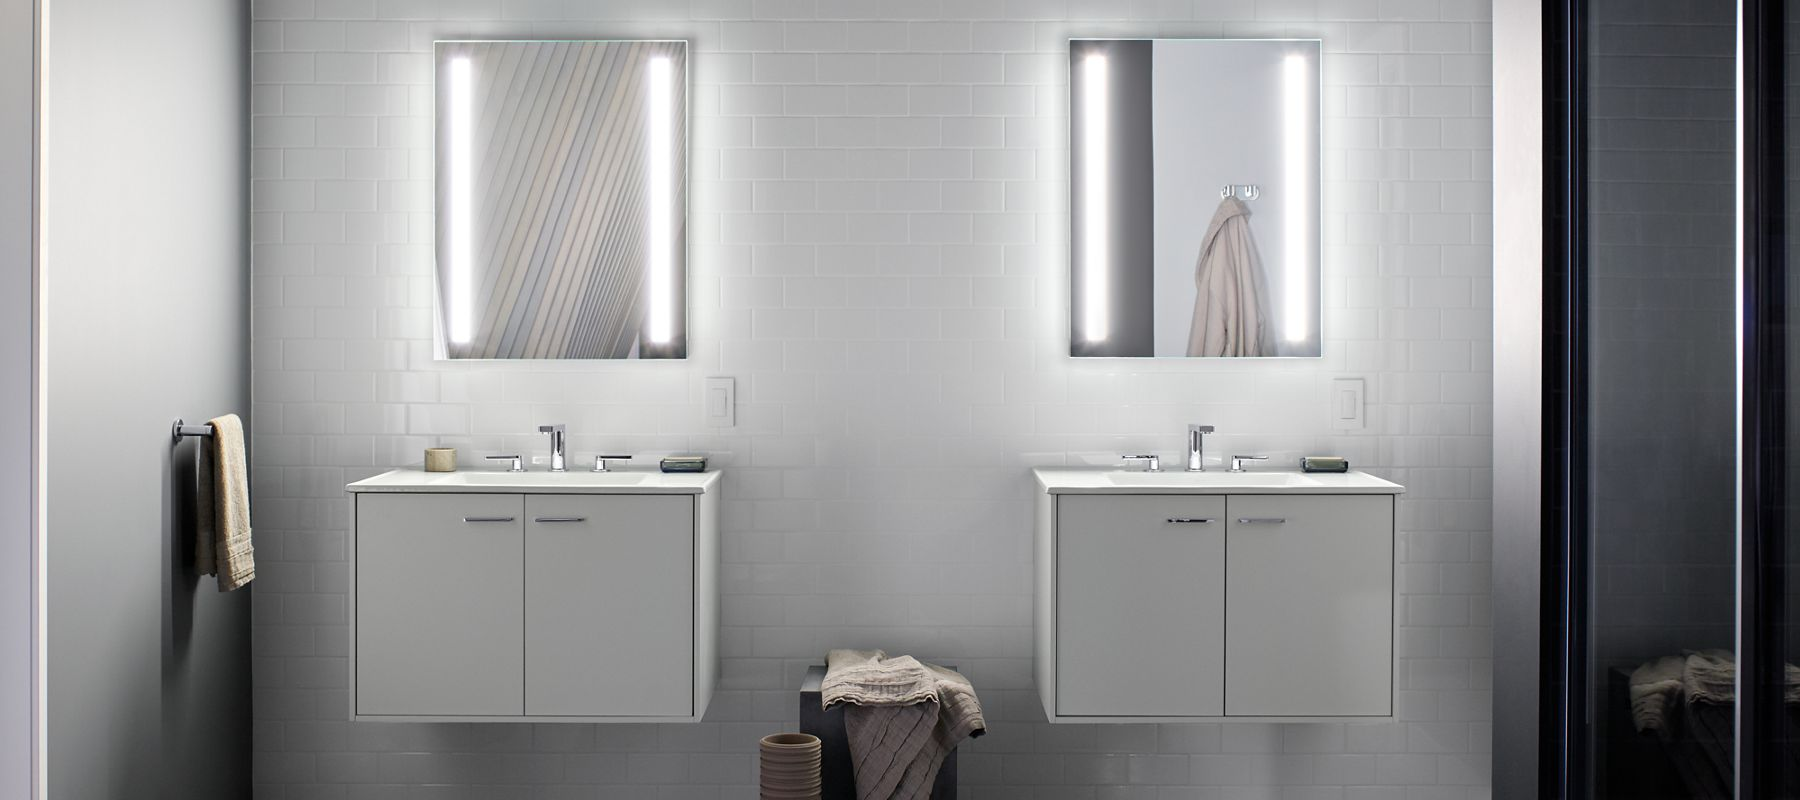 Bathroom Mirrors New Zealand bathroom mirrors | bathroom | kohler